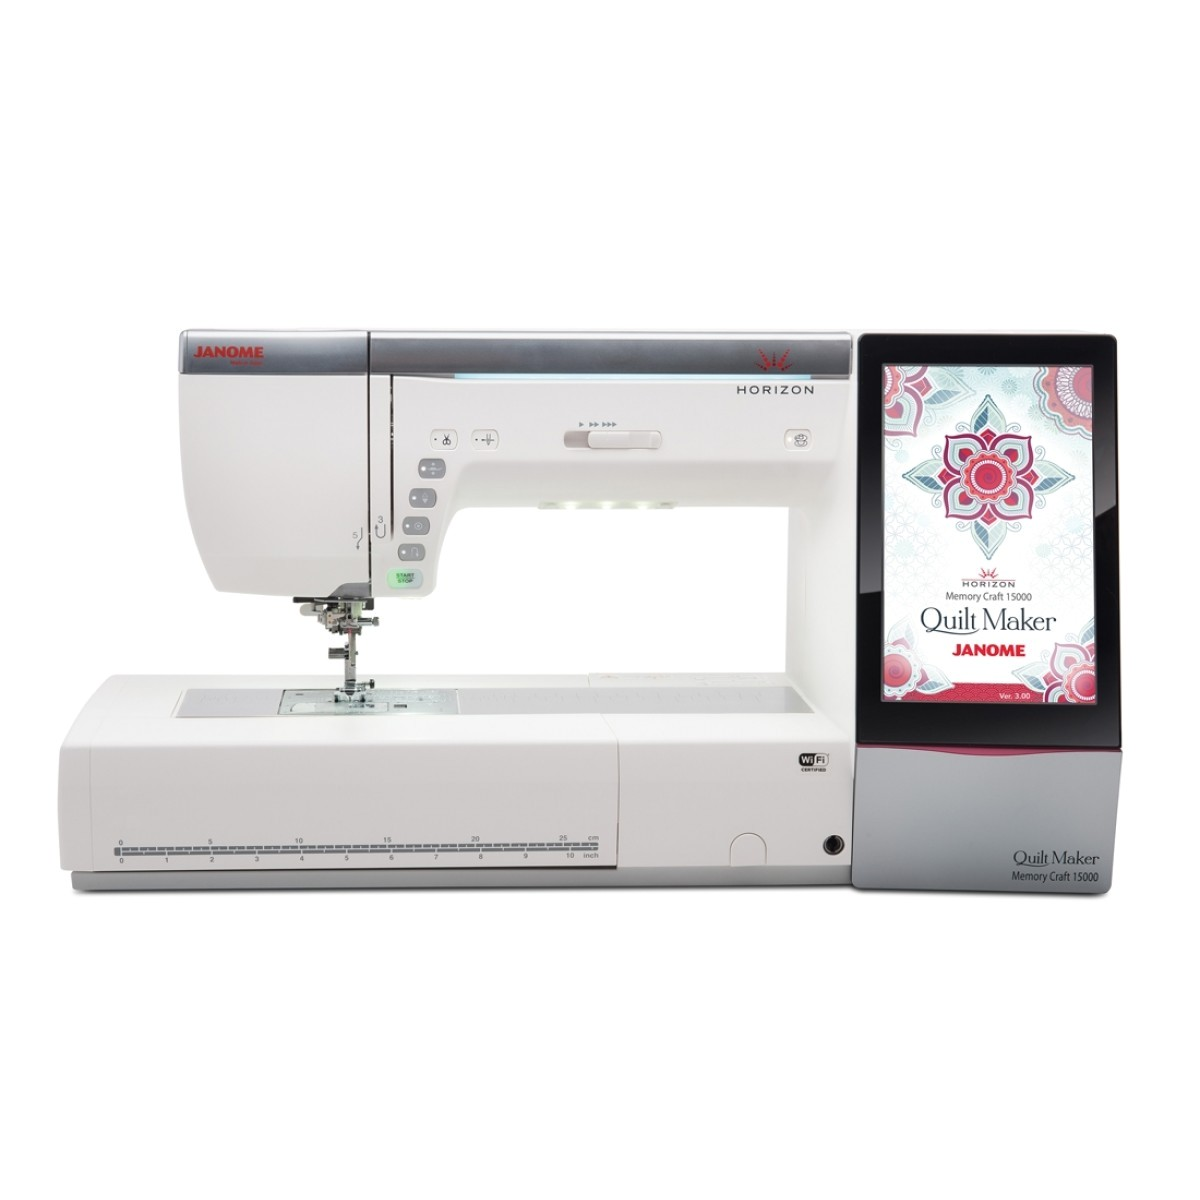 janome horizon quilt maker memory craft 15000 sewing quilting embroidery machine